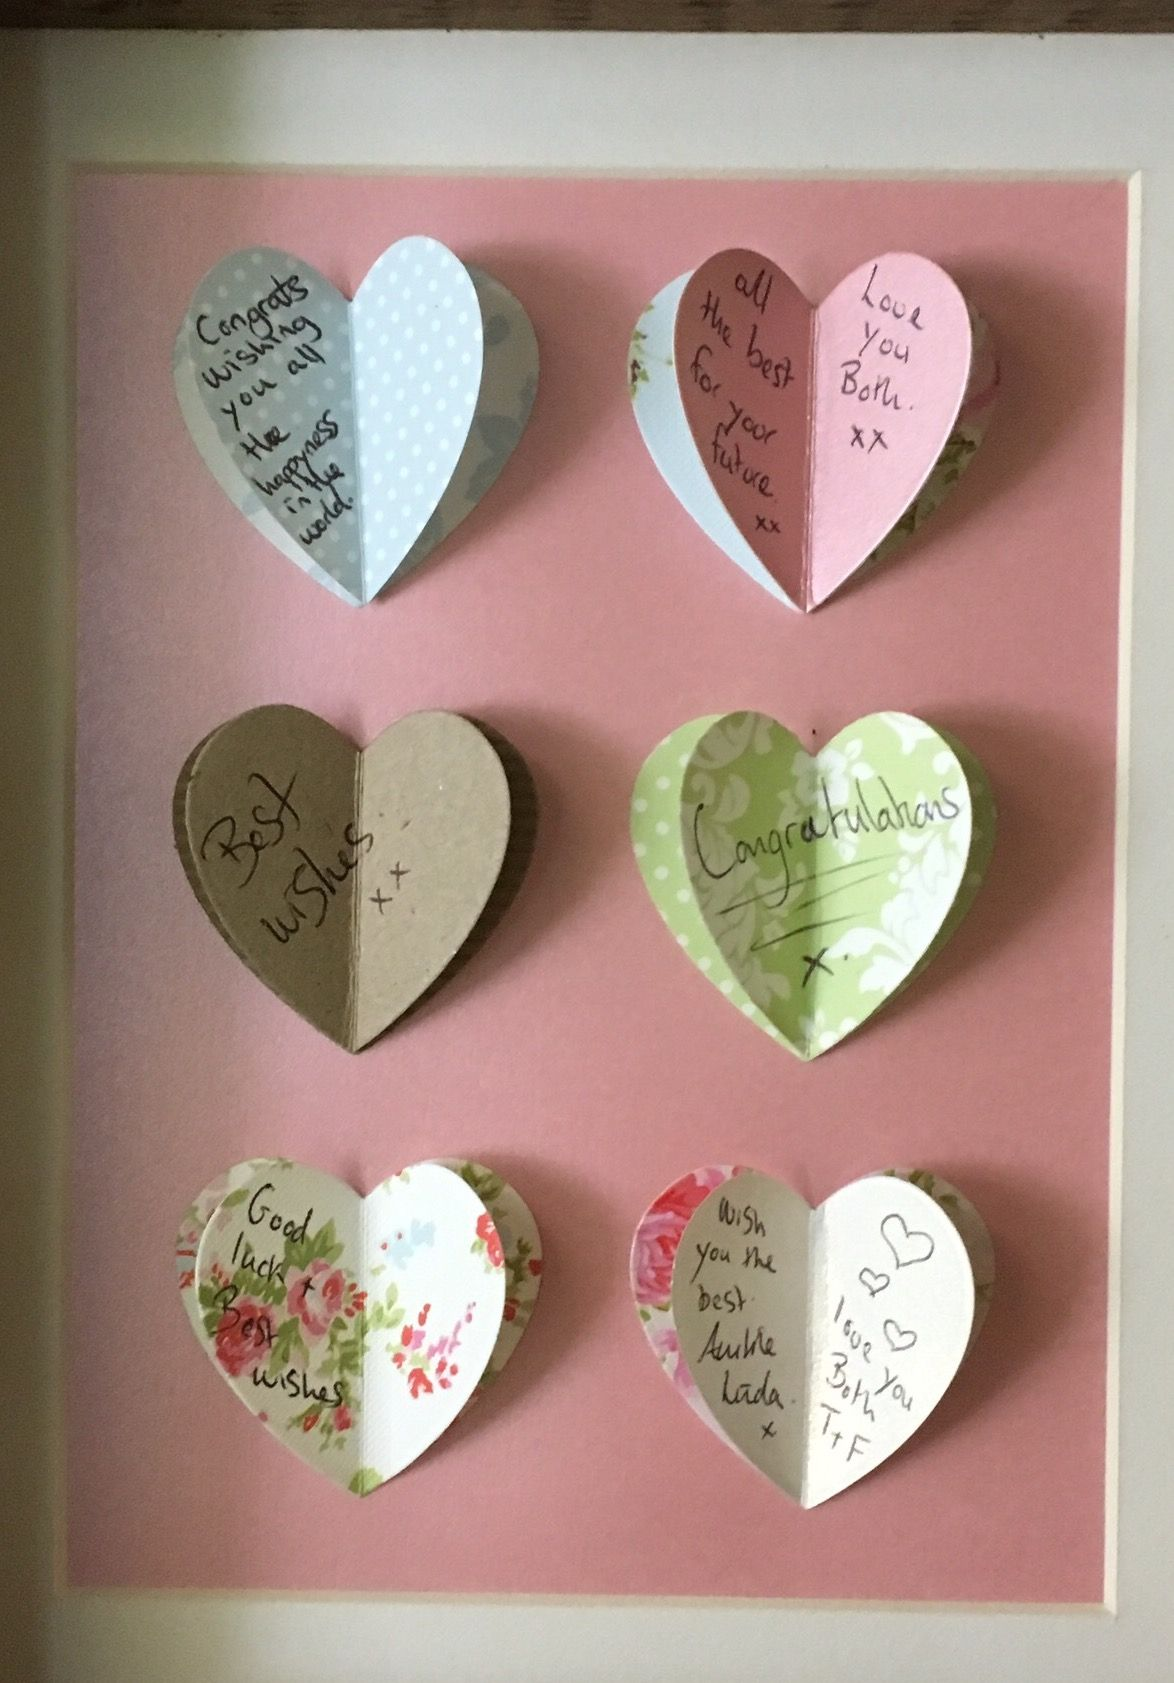 Pin by unique designs by tina on Alternative guest books by us ...